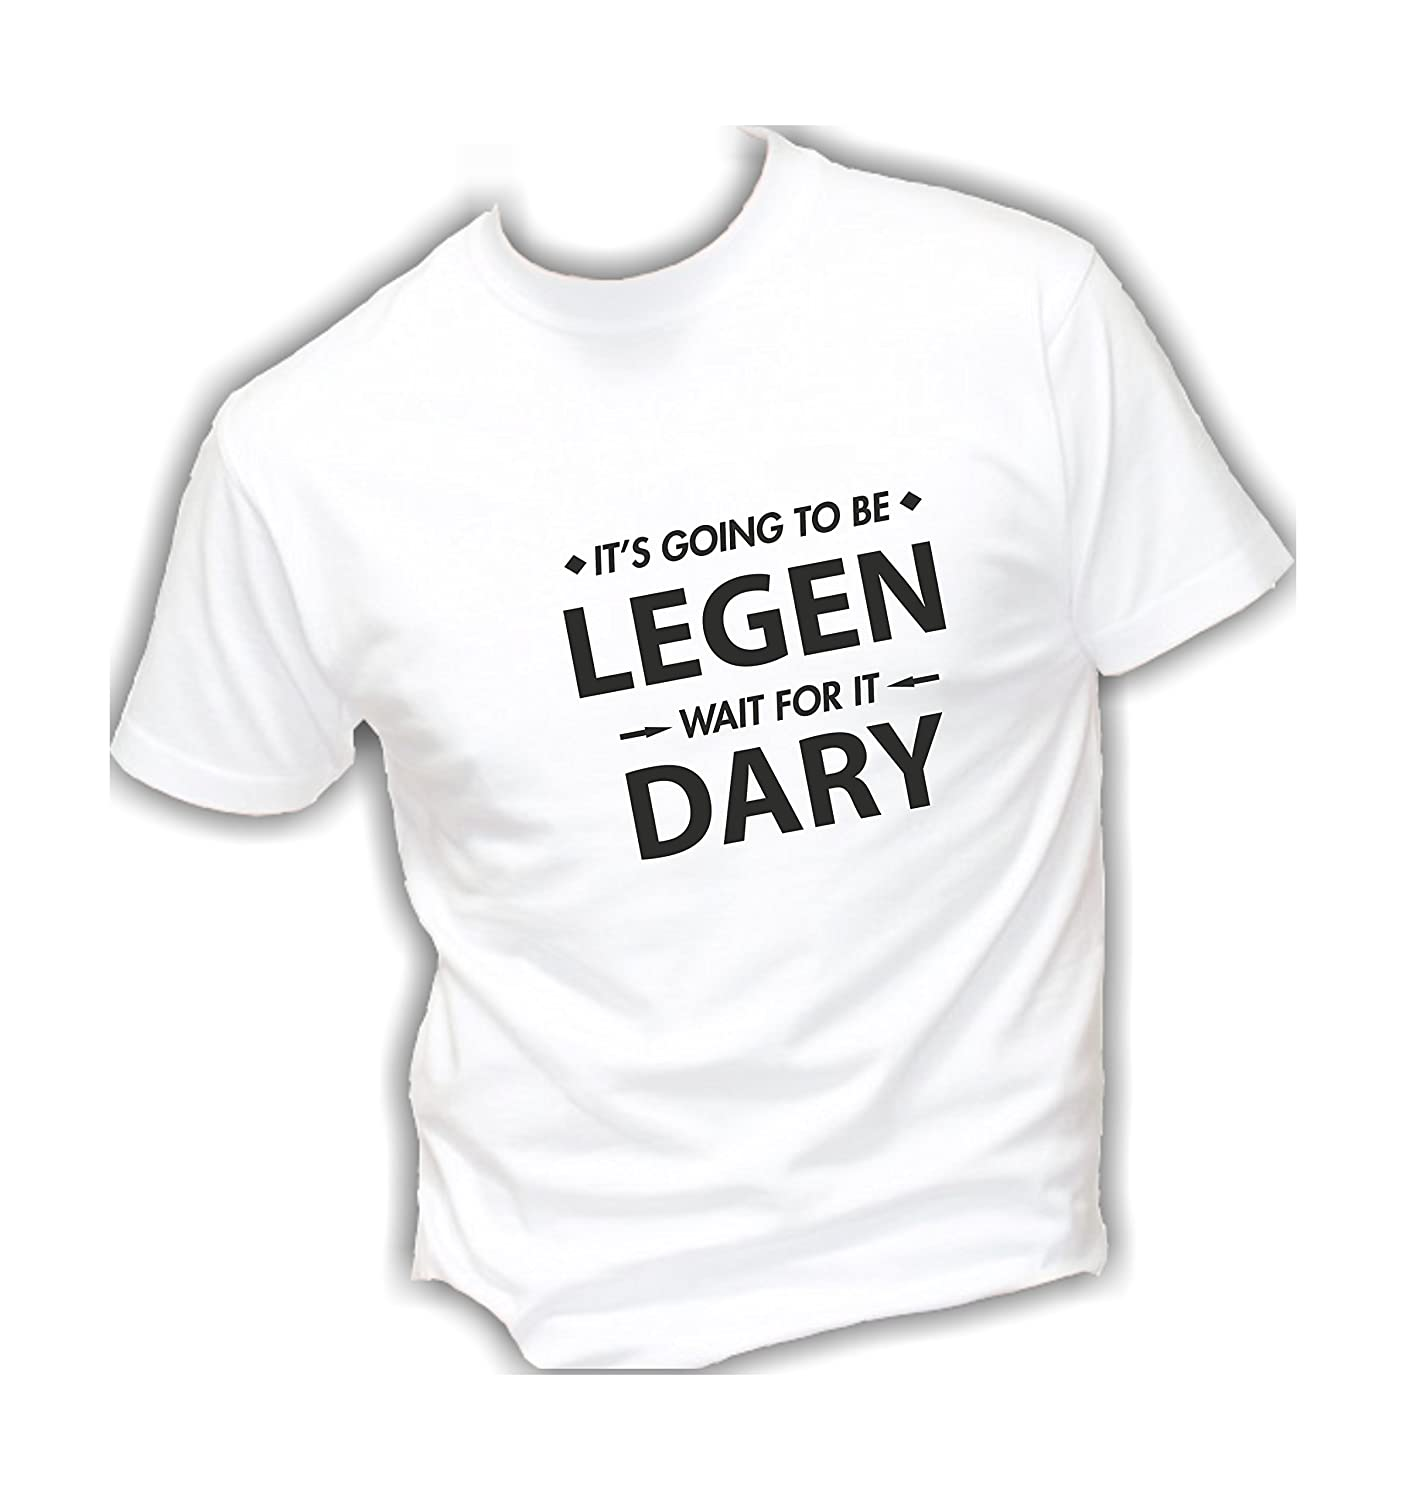 Divertente Humor Made in Italy Legendary Social Crazy T-Shirt Uomo Cotone Basic Super vestibilit/à Top qualit/à